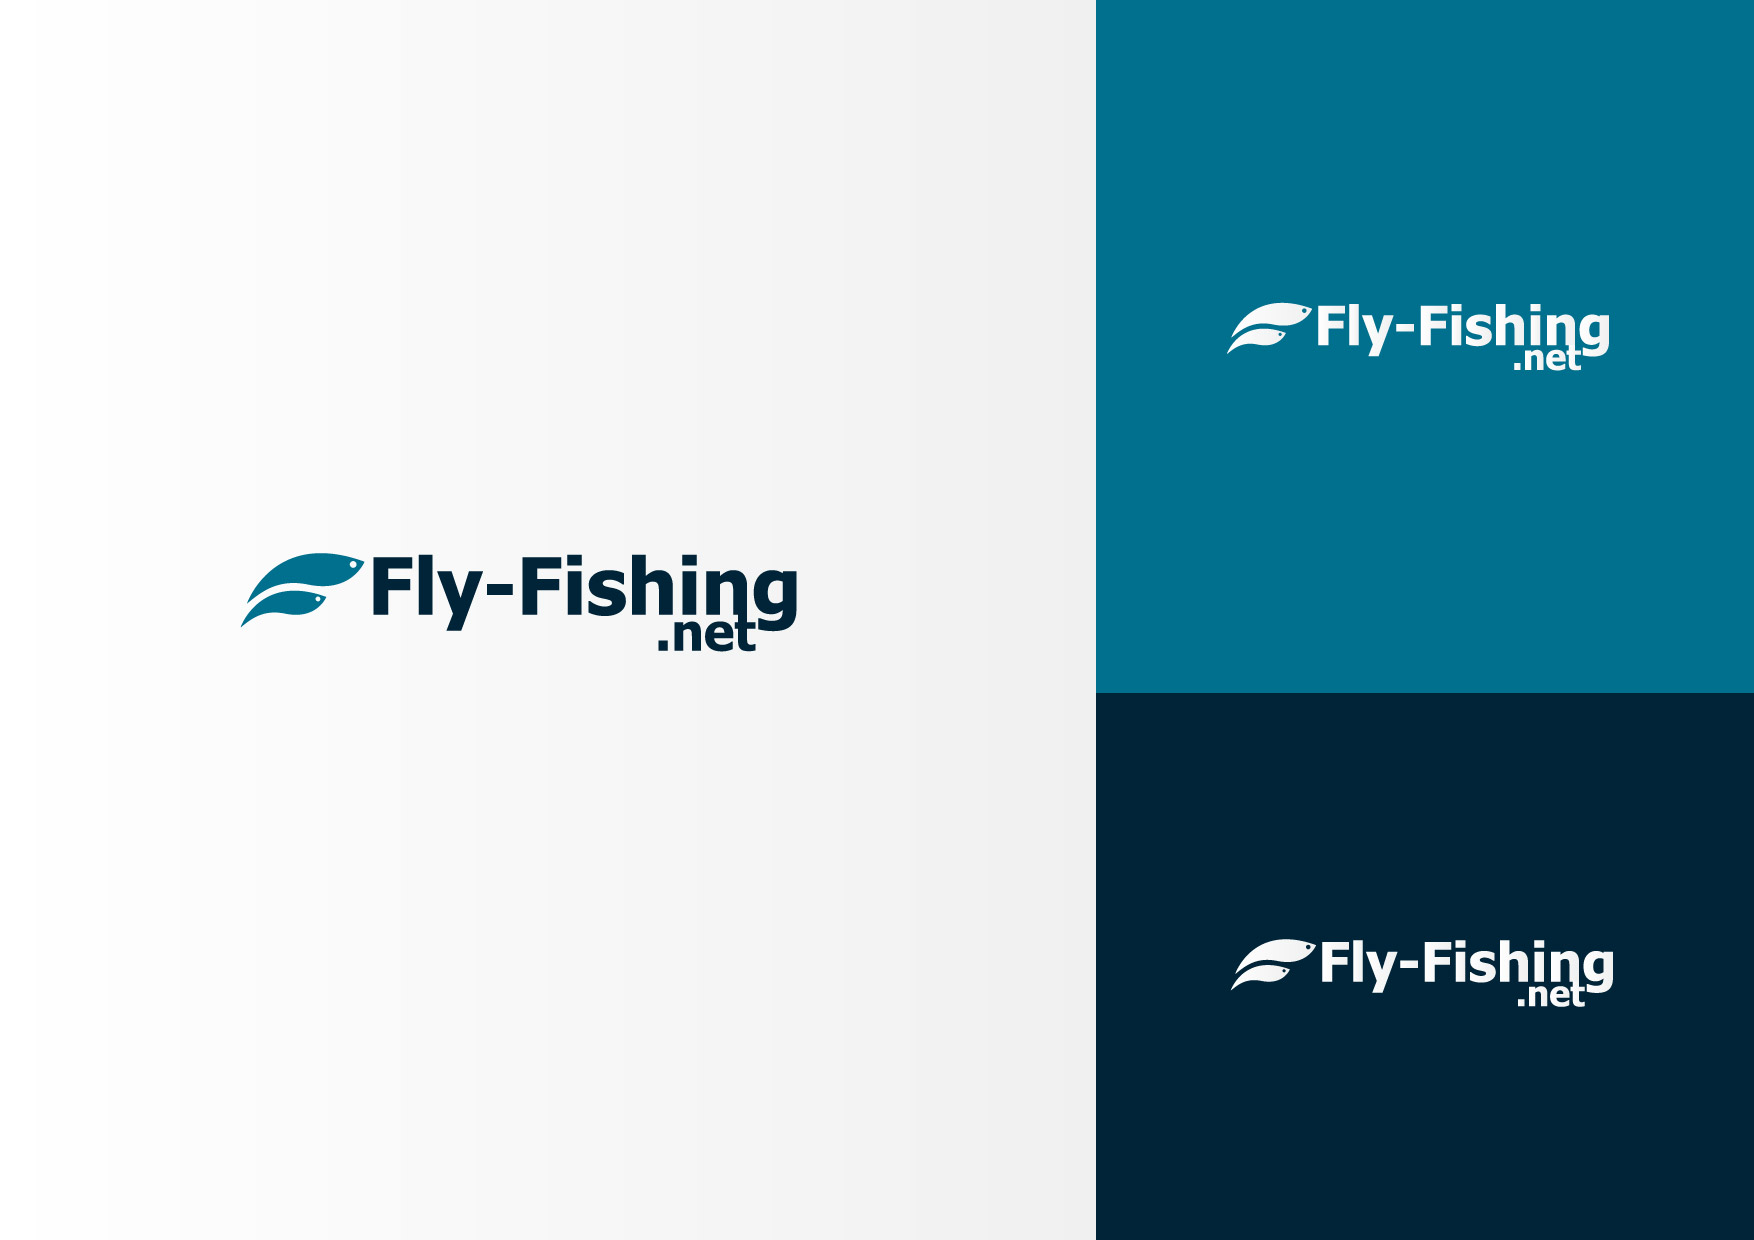 Logo Design by Osi Indra - Entry No. 27 in the Logo Design Contest Artistic Logo Design for fly-fishing.net.